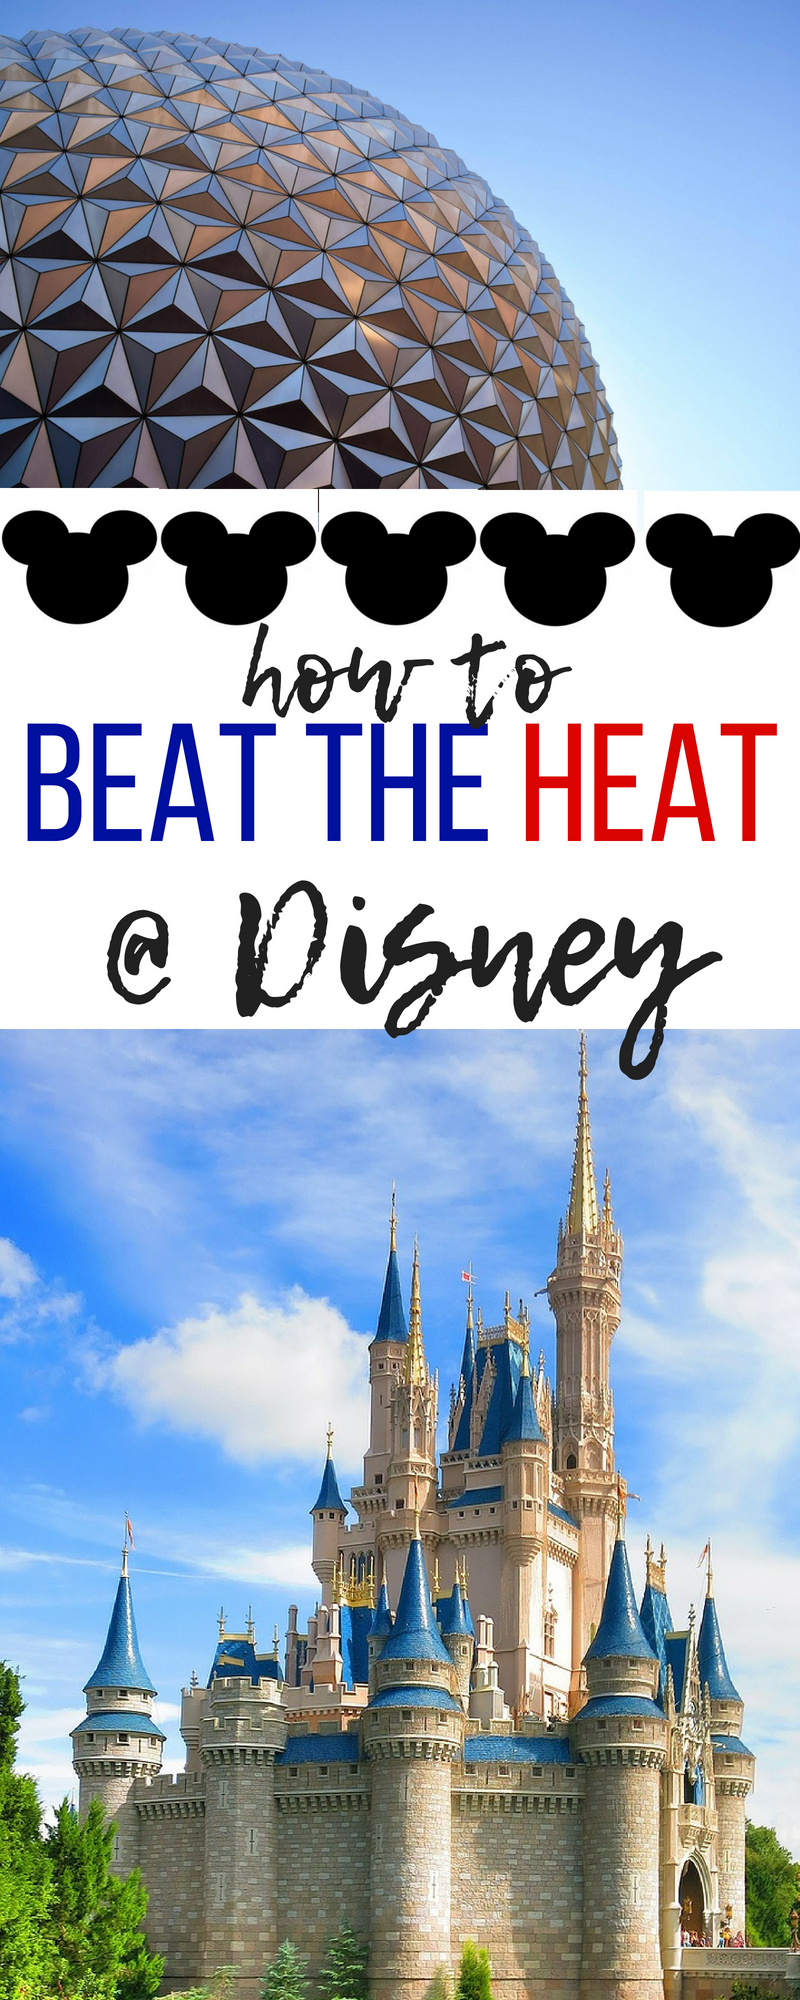 These tips to stay cool at Disney will help you beat the heat during those sweltering summer months in Florida.  #Disney #DisneyWorld #DisneyVacation #FamilyVacation #Vacation #Tips #Travel #Florida #Orlando #Hacks #Summer